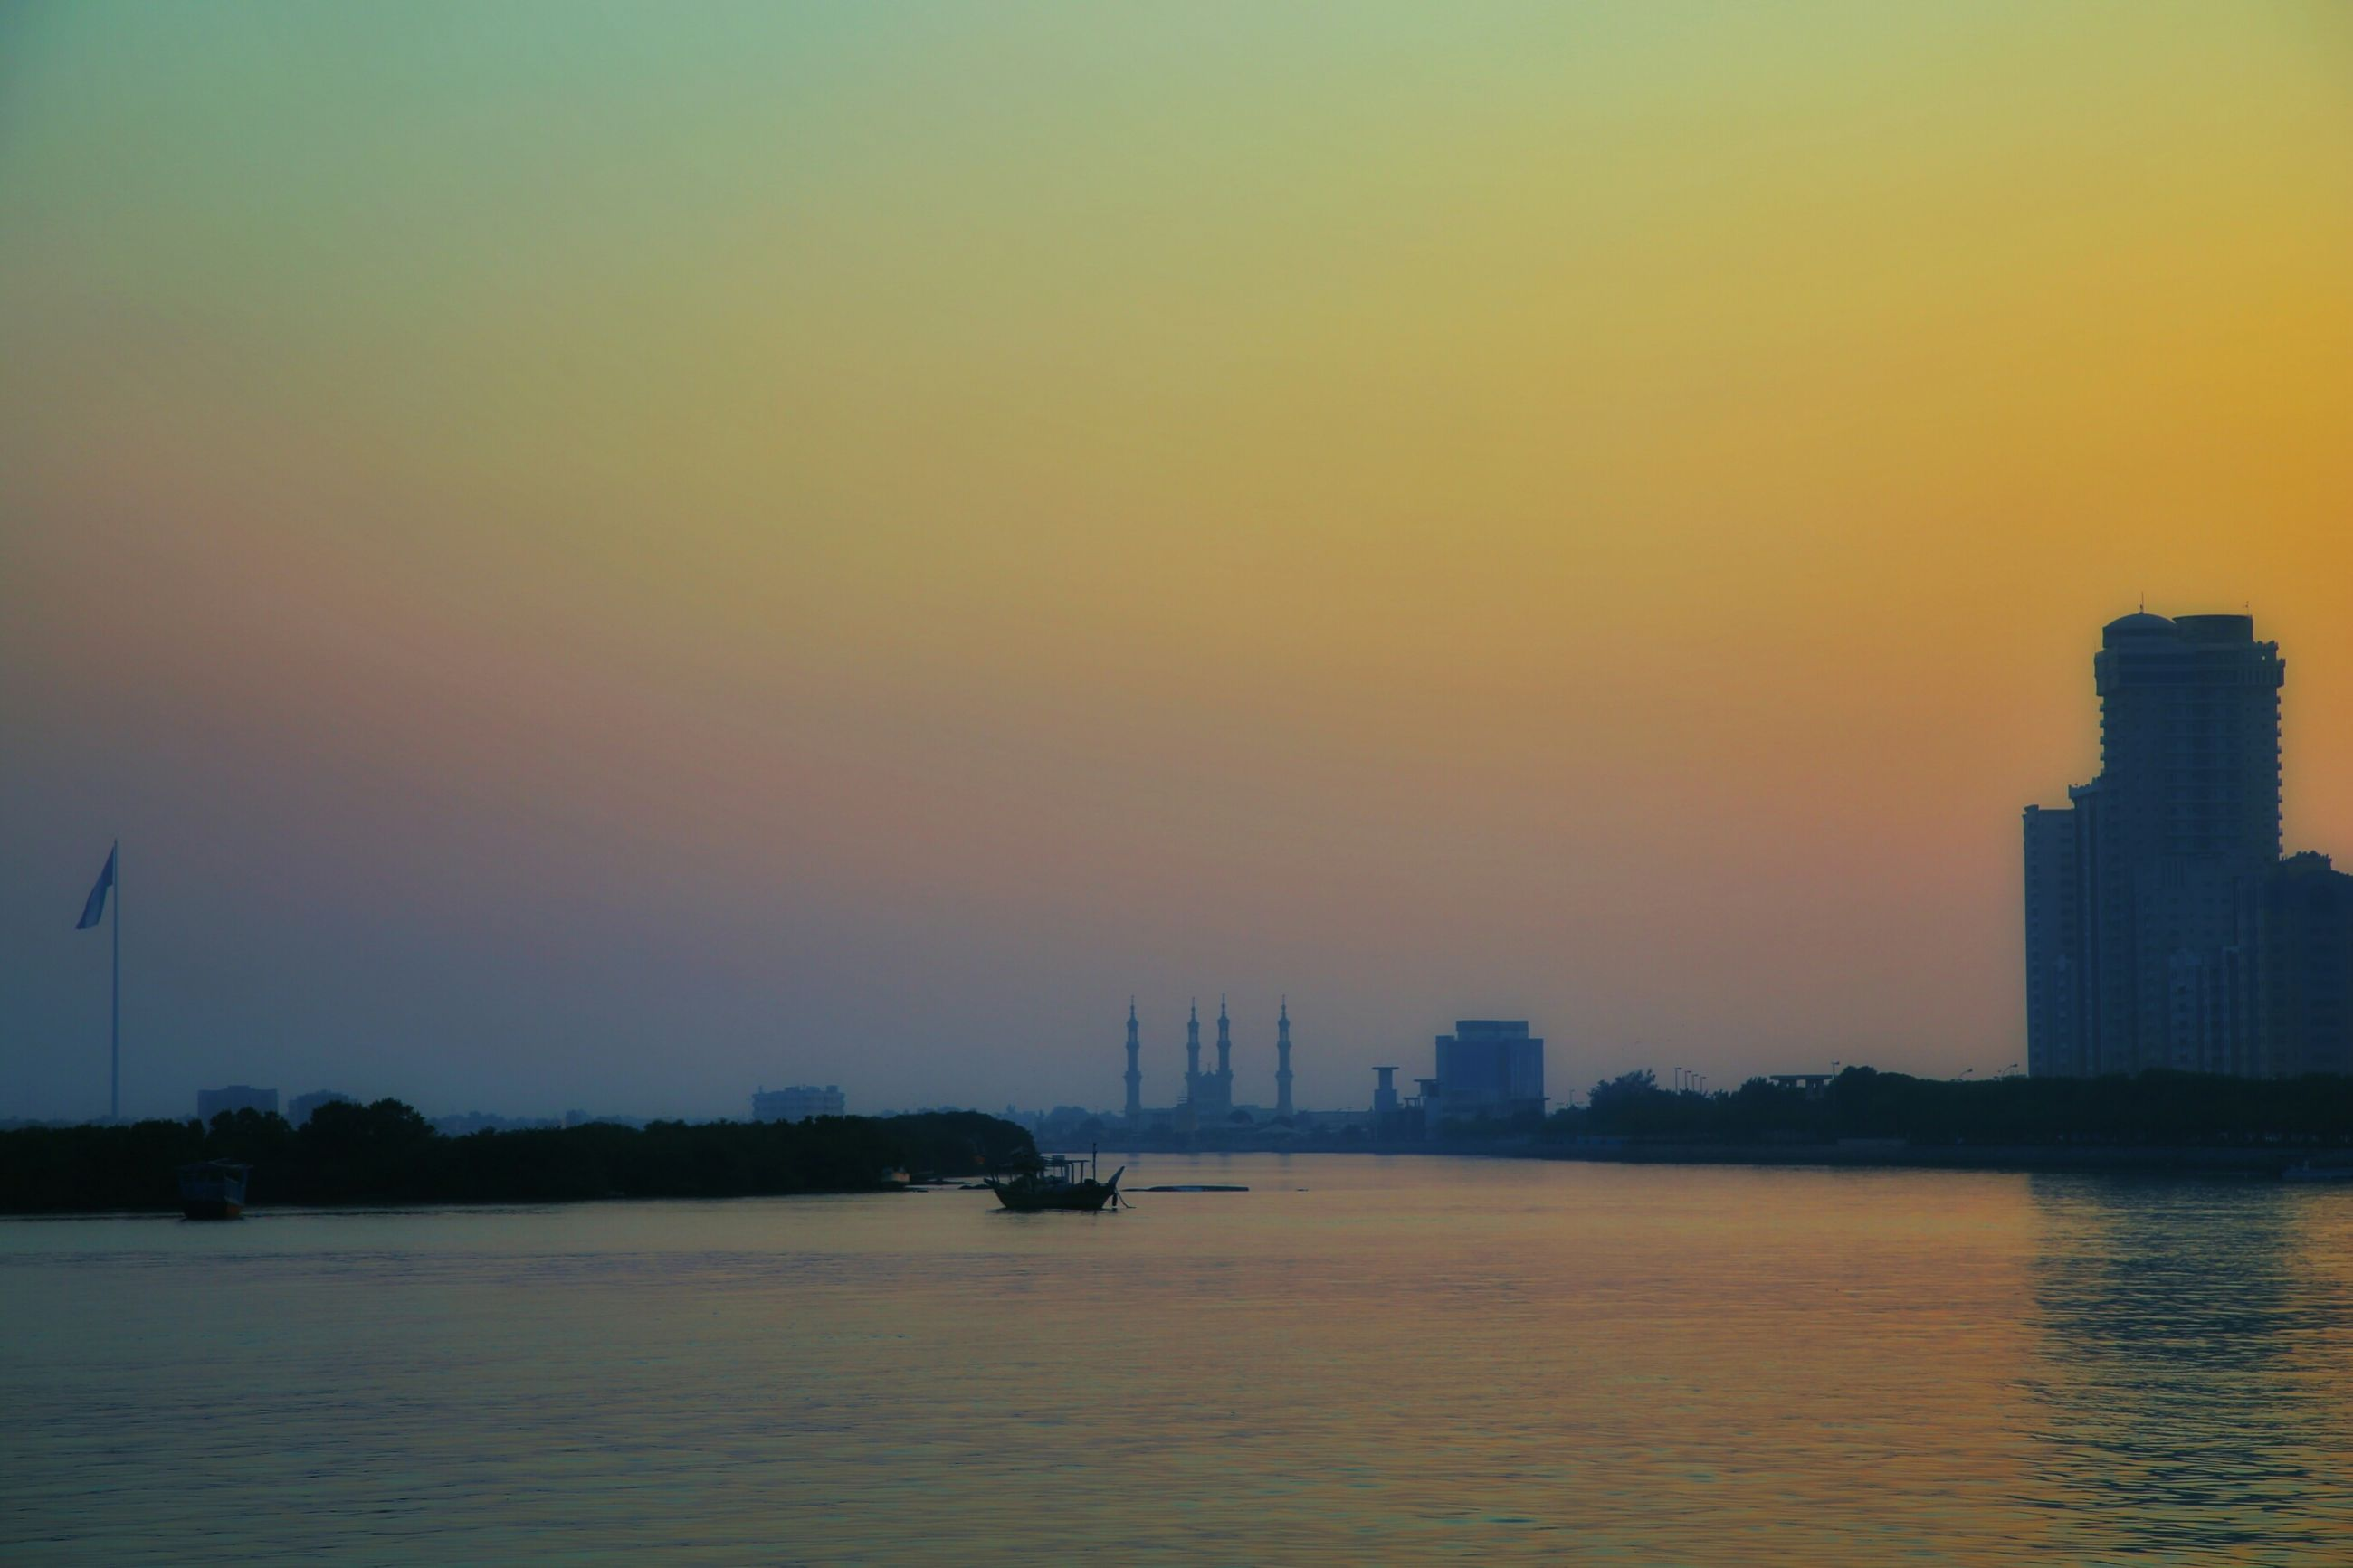 sunset, waterfront, water, building exterior, architecture, built structure, orange color, sea, copy space, scenics, silhouette, city, nautical vessel, transportation, beauty in nature, river, clear sky, sky, nature, tranquility